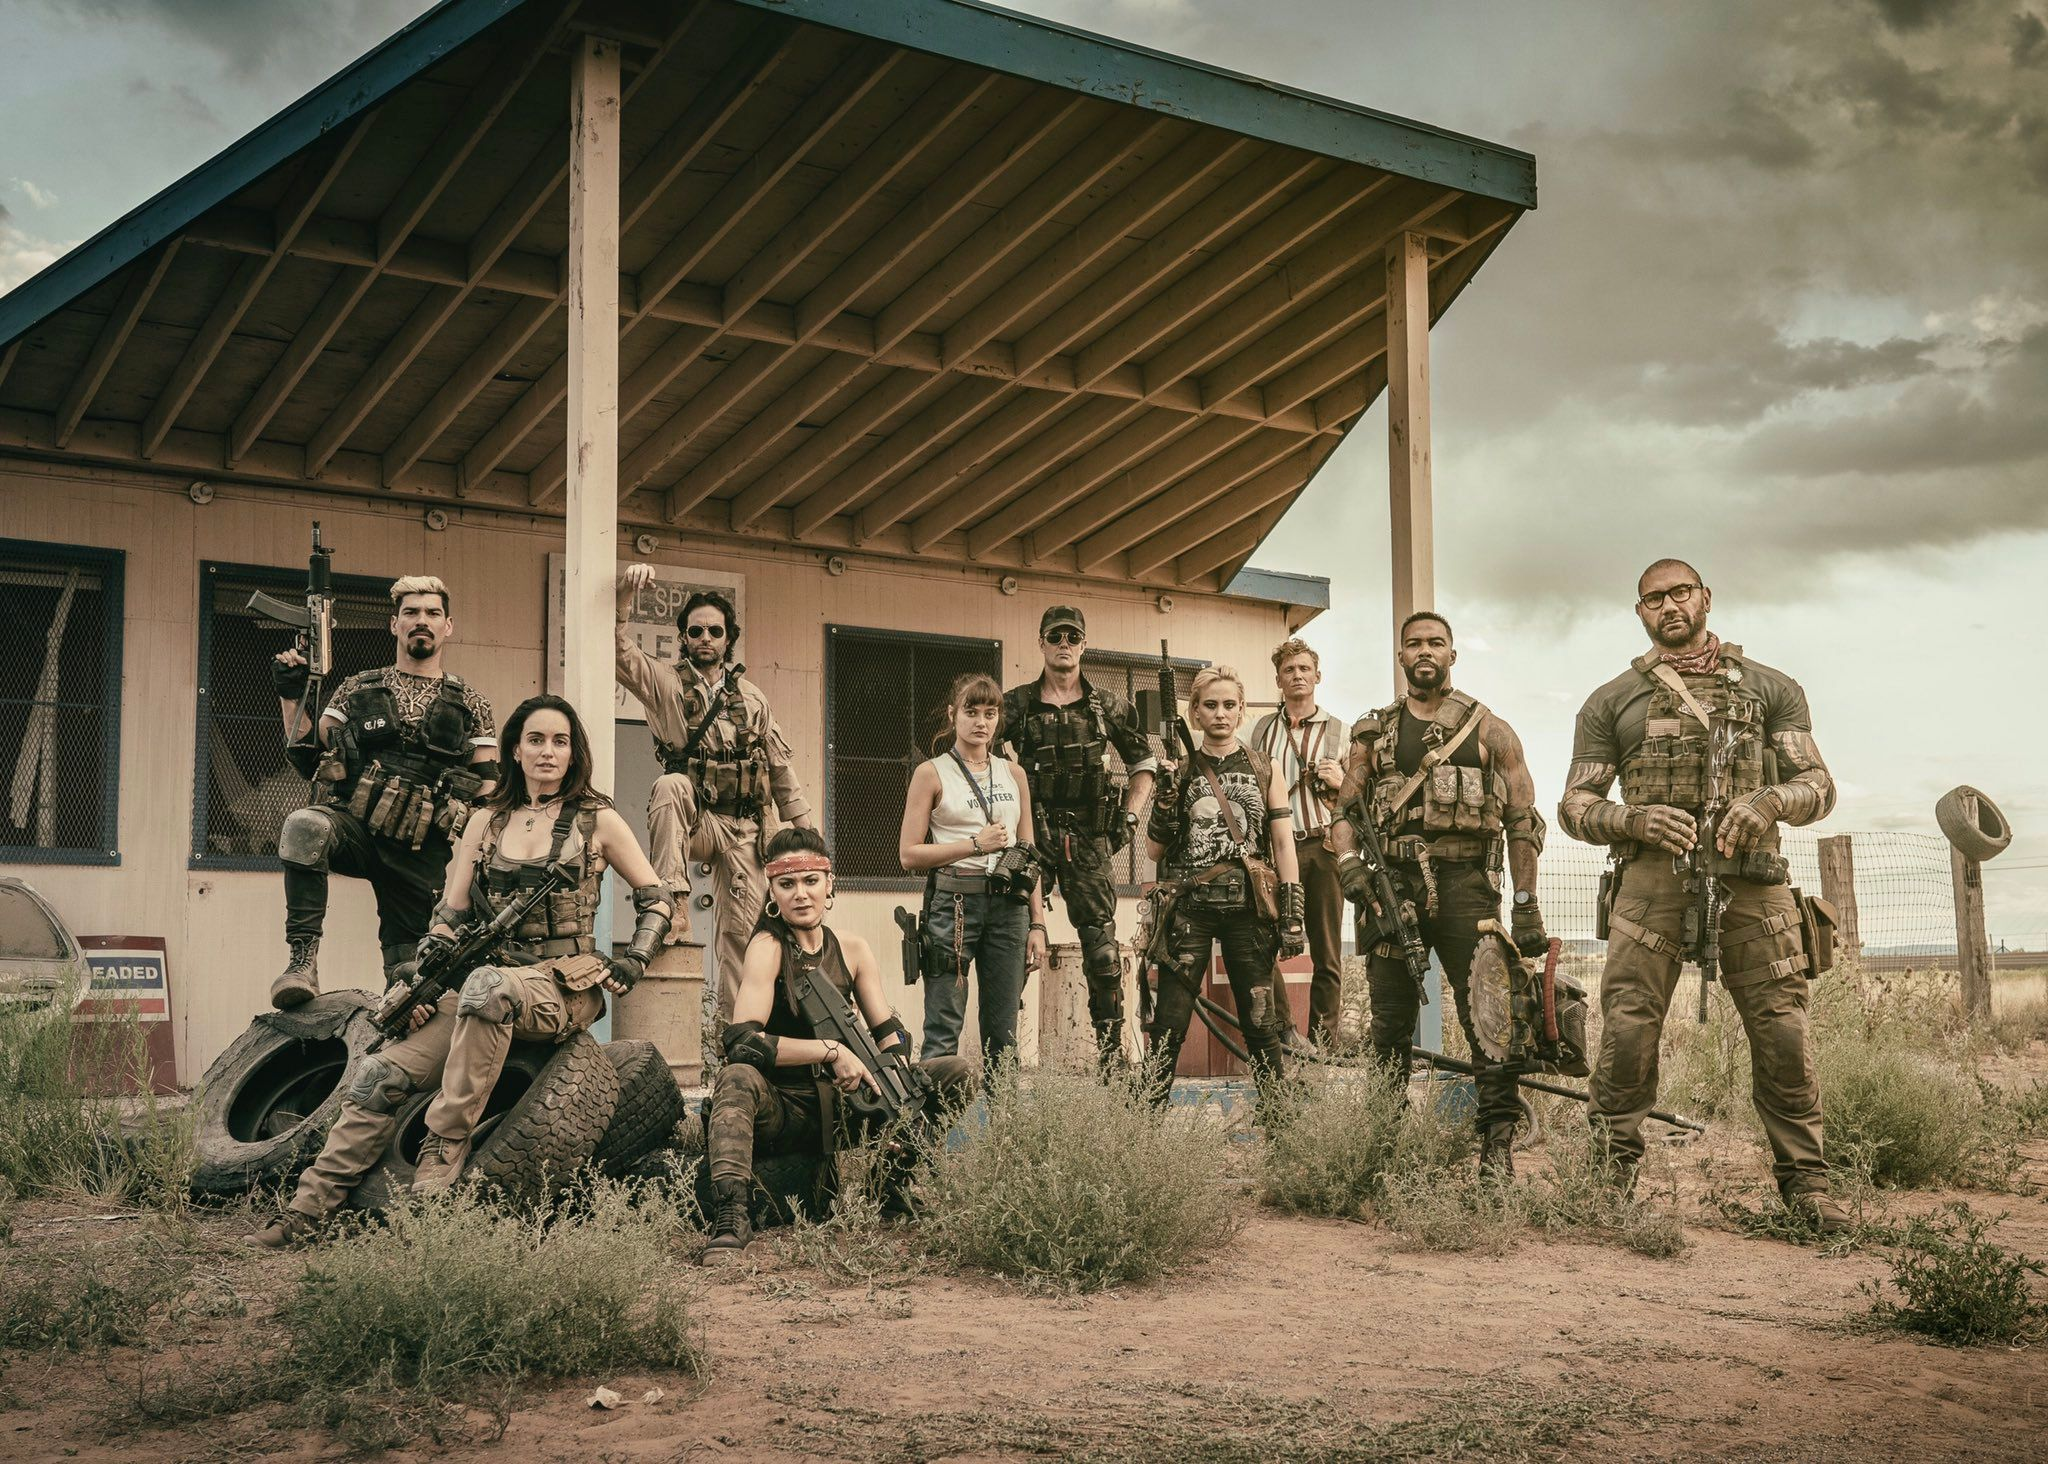 Army of the Dead Cast Image Reveals Zack Snyder s Netflix